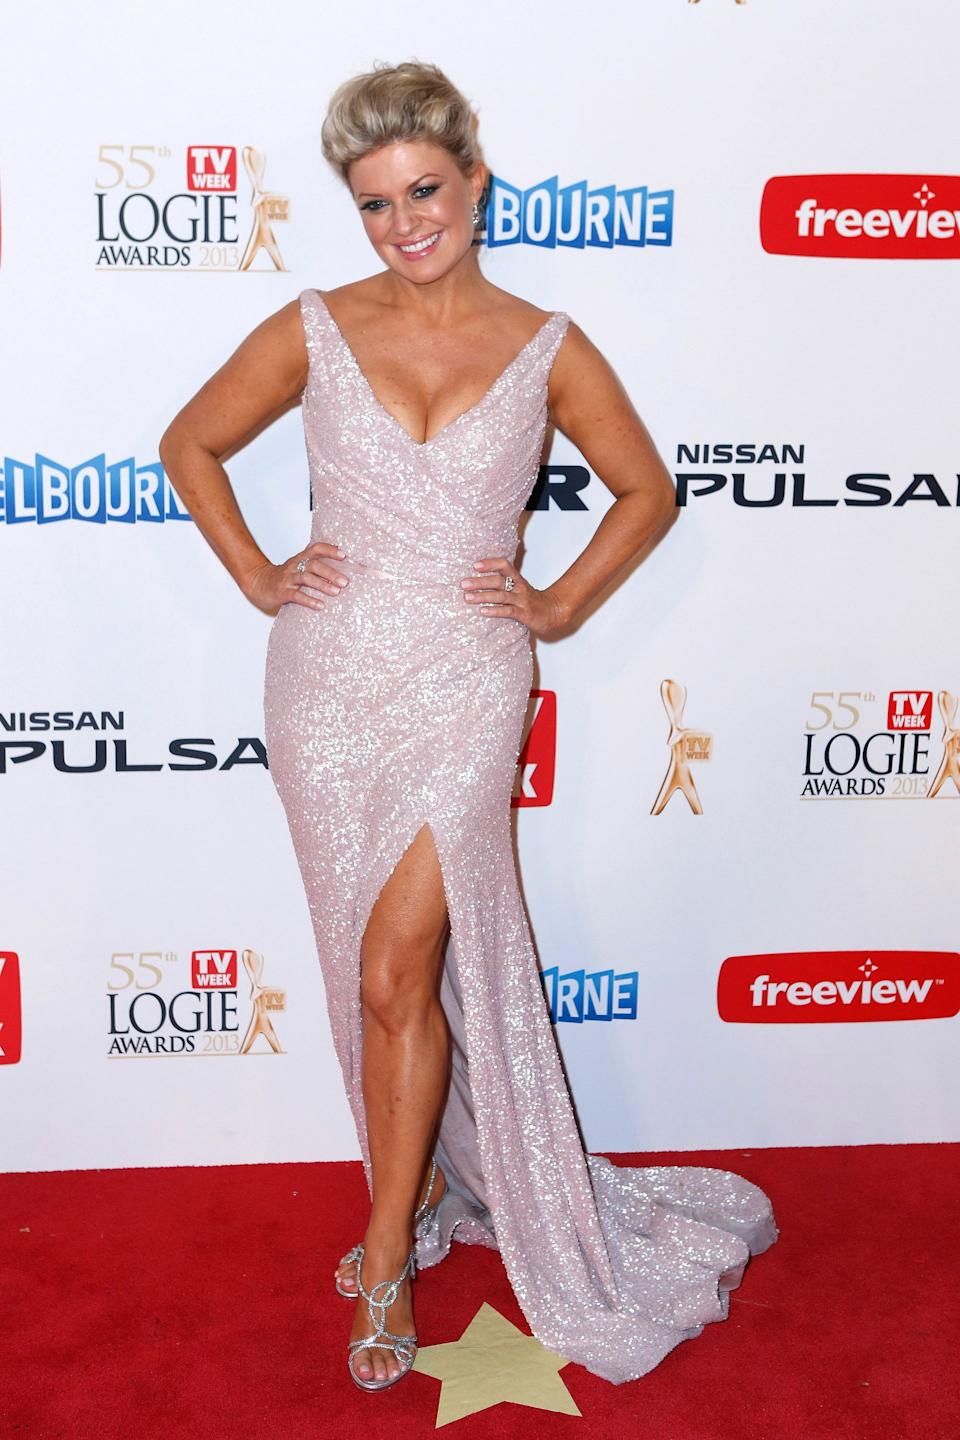 Aussie actress Emily Symons became famous in 'Home and Away', before swapping Ramsey Street for 'Emmerdale'.